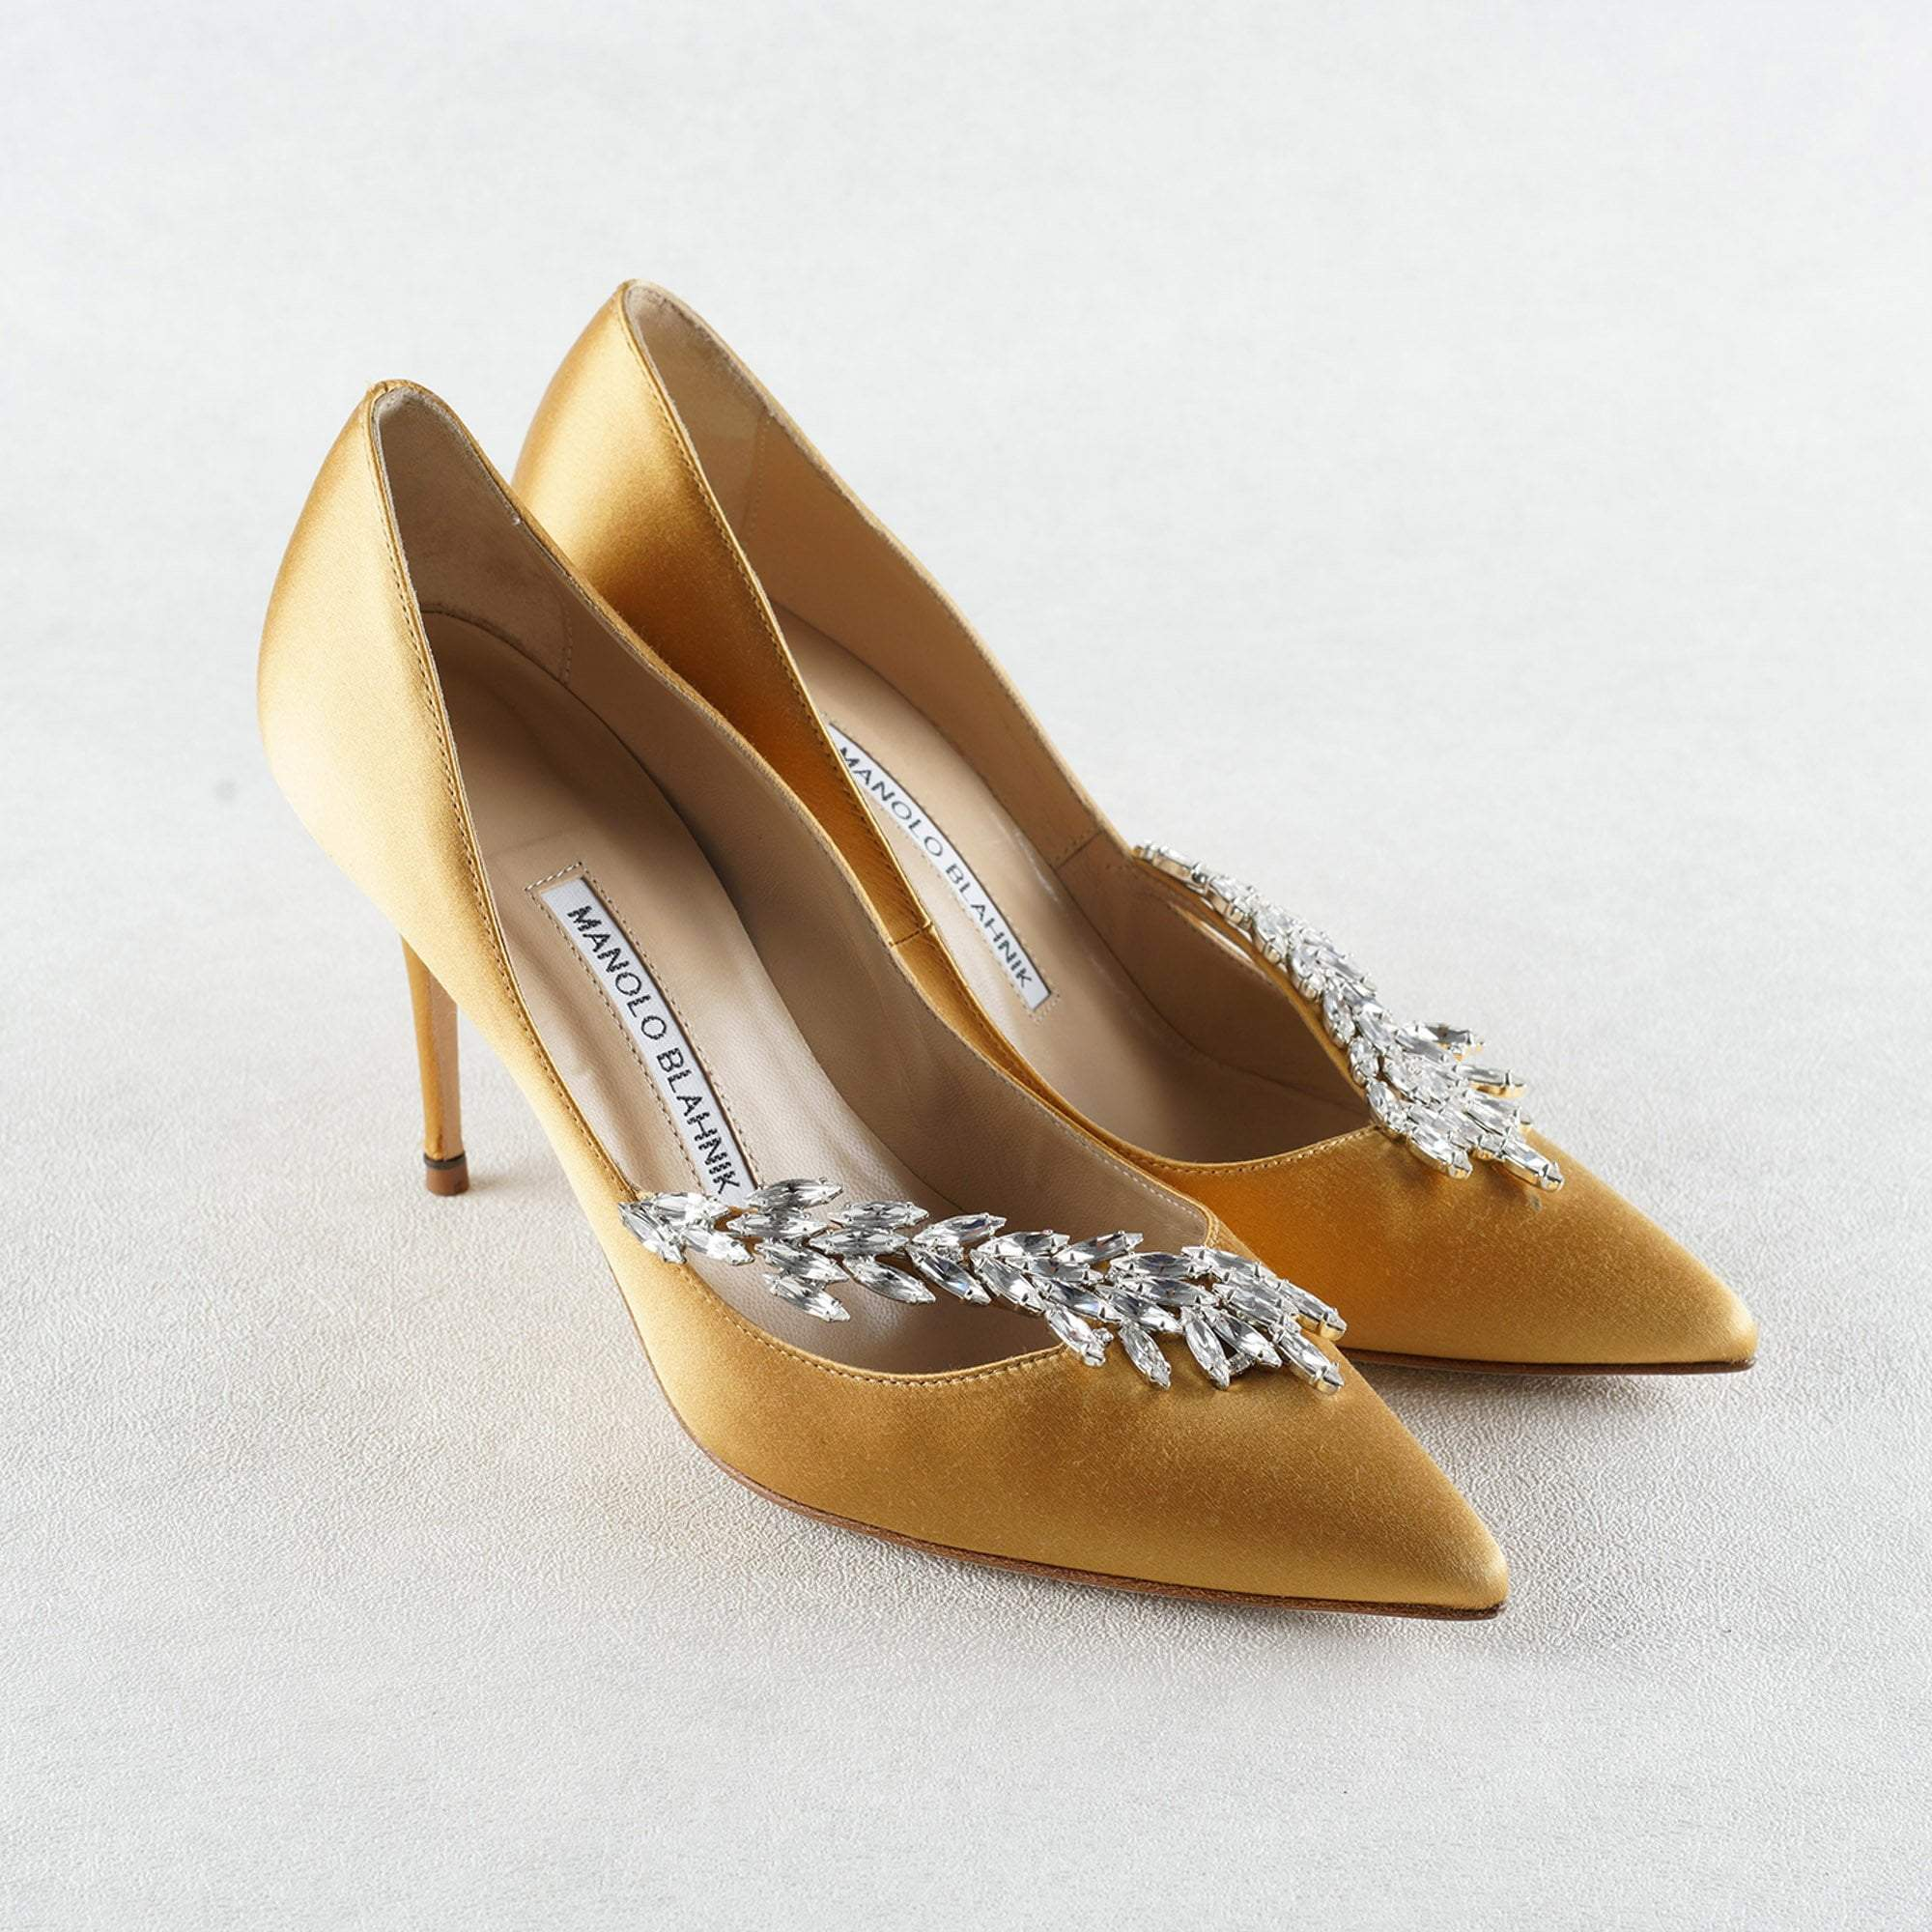 Manolo Blahnik Gold Satin Nadira Pumps 100